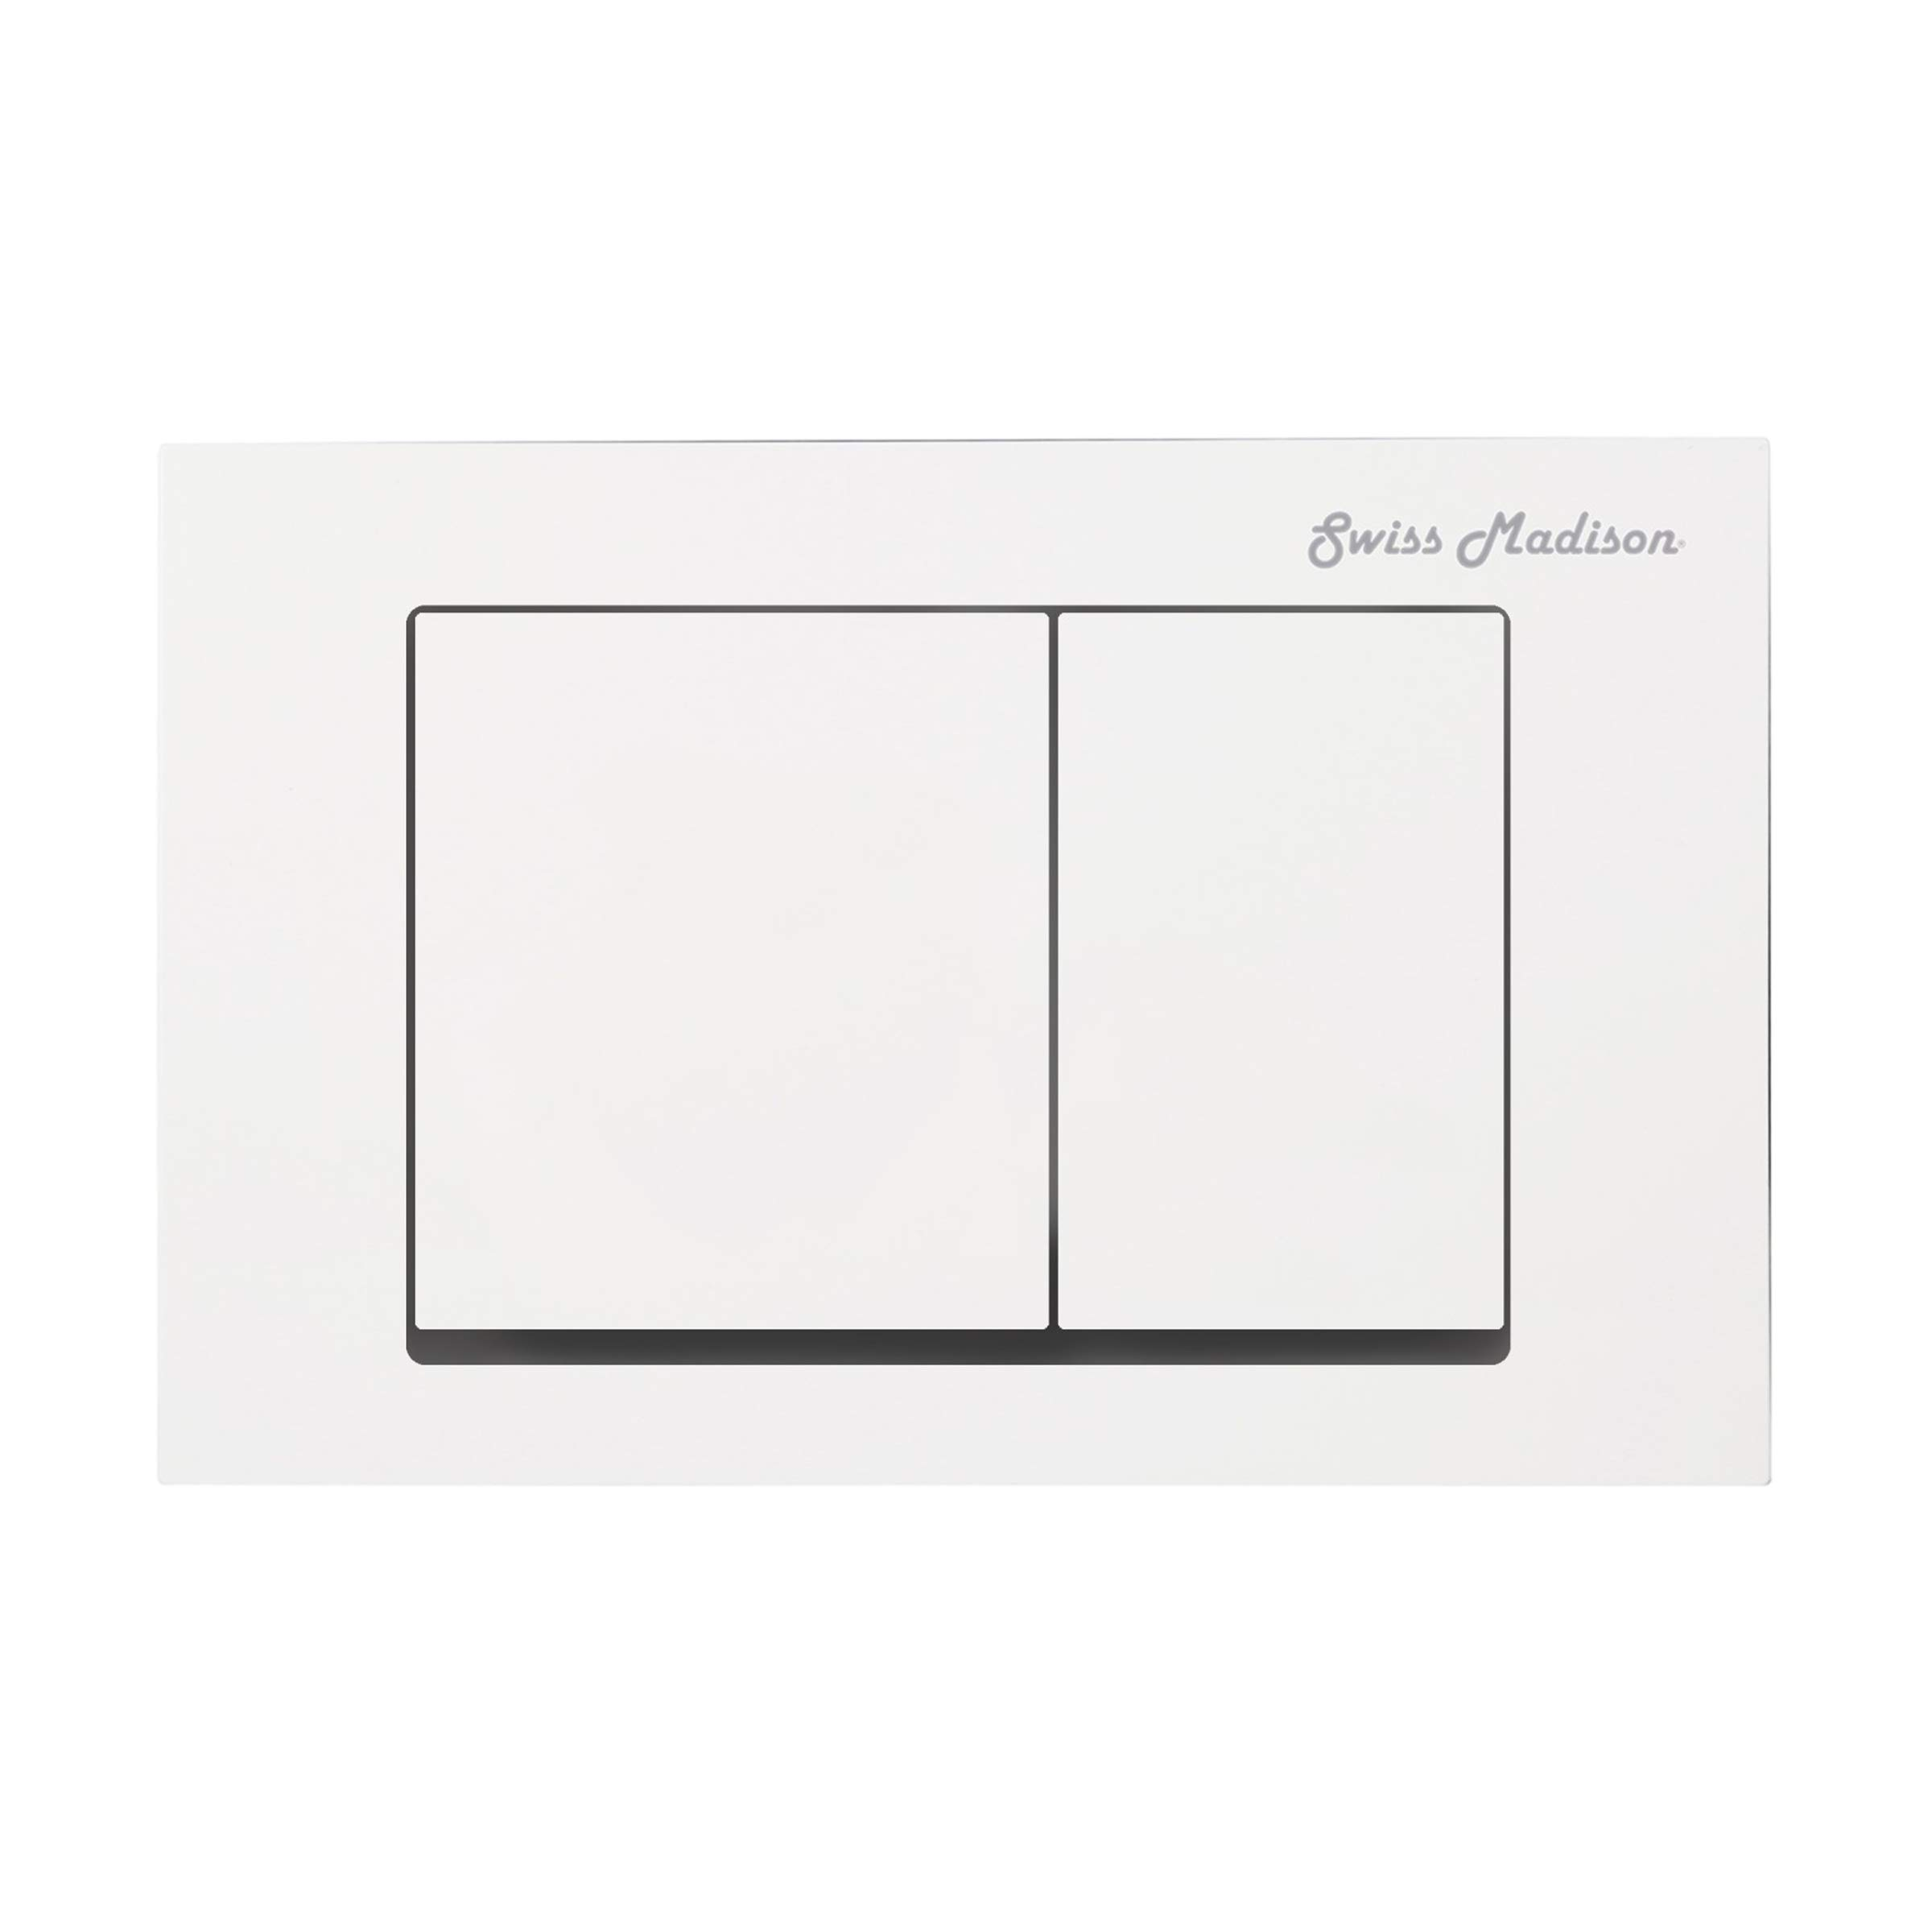 Swiss Madison Well Made Forever White SM-WC002W Wall Mount Dual Flush Actuator Plate with Square Push Buttons